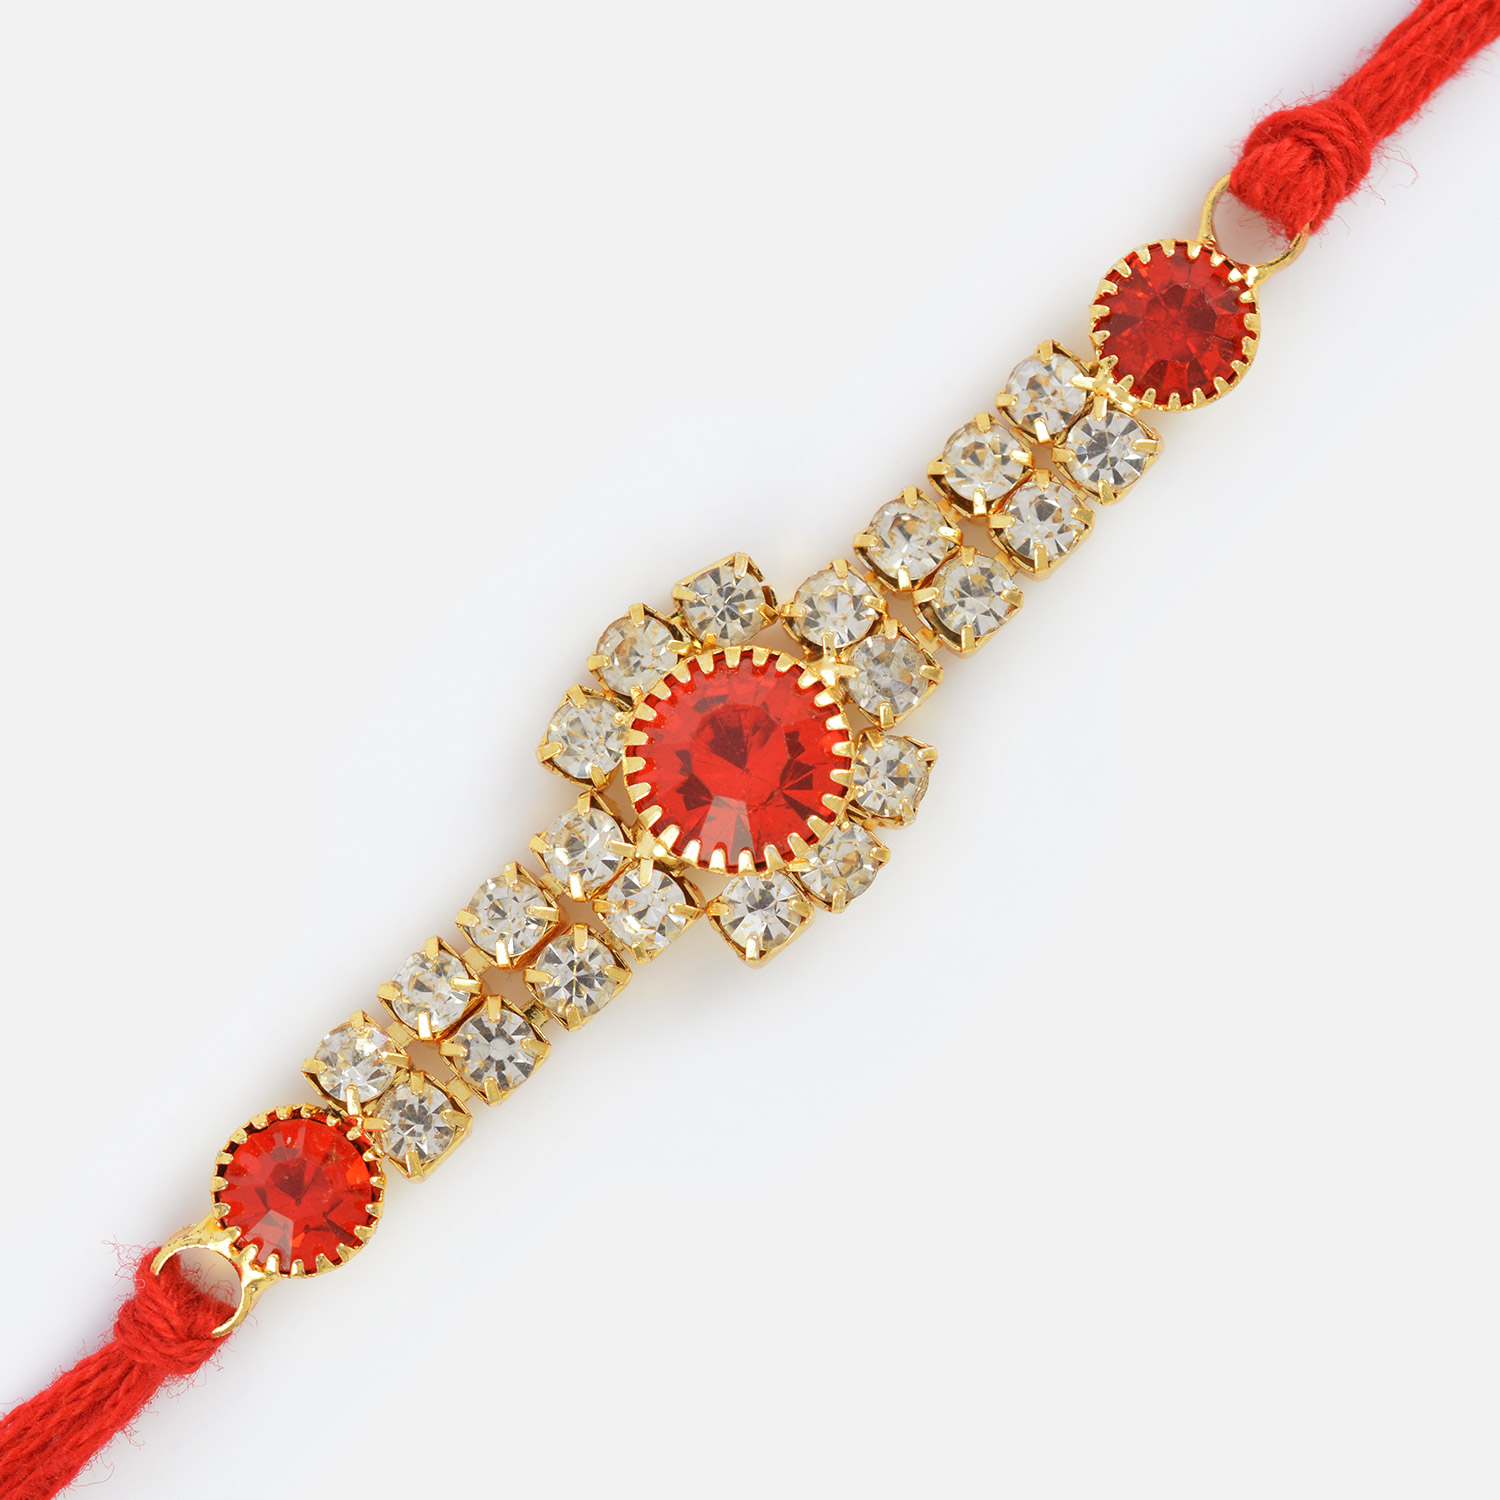 Simply Elegant Diamond Jewel Rakhi